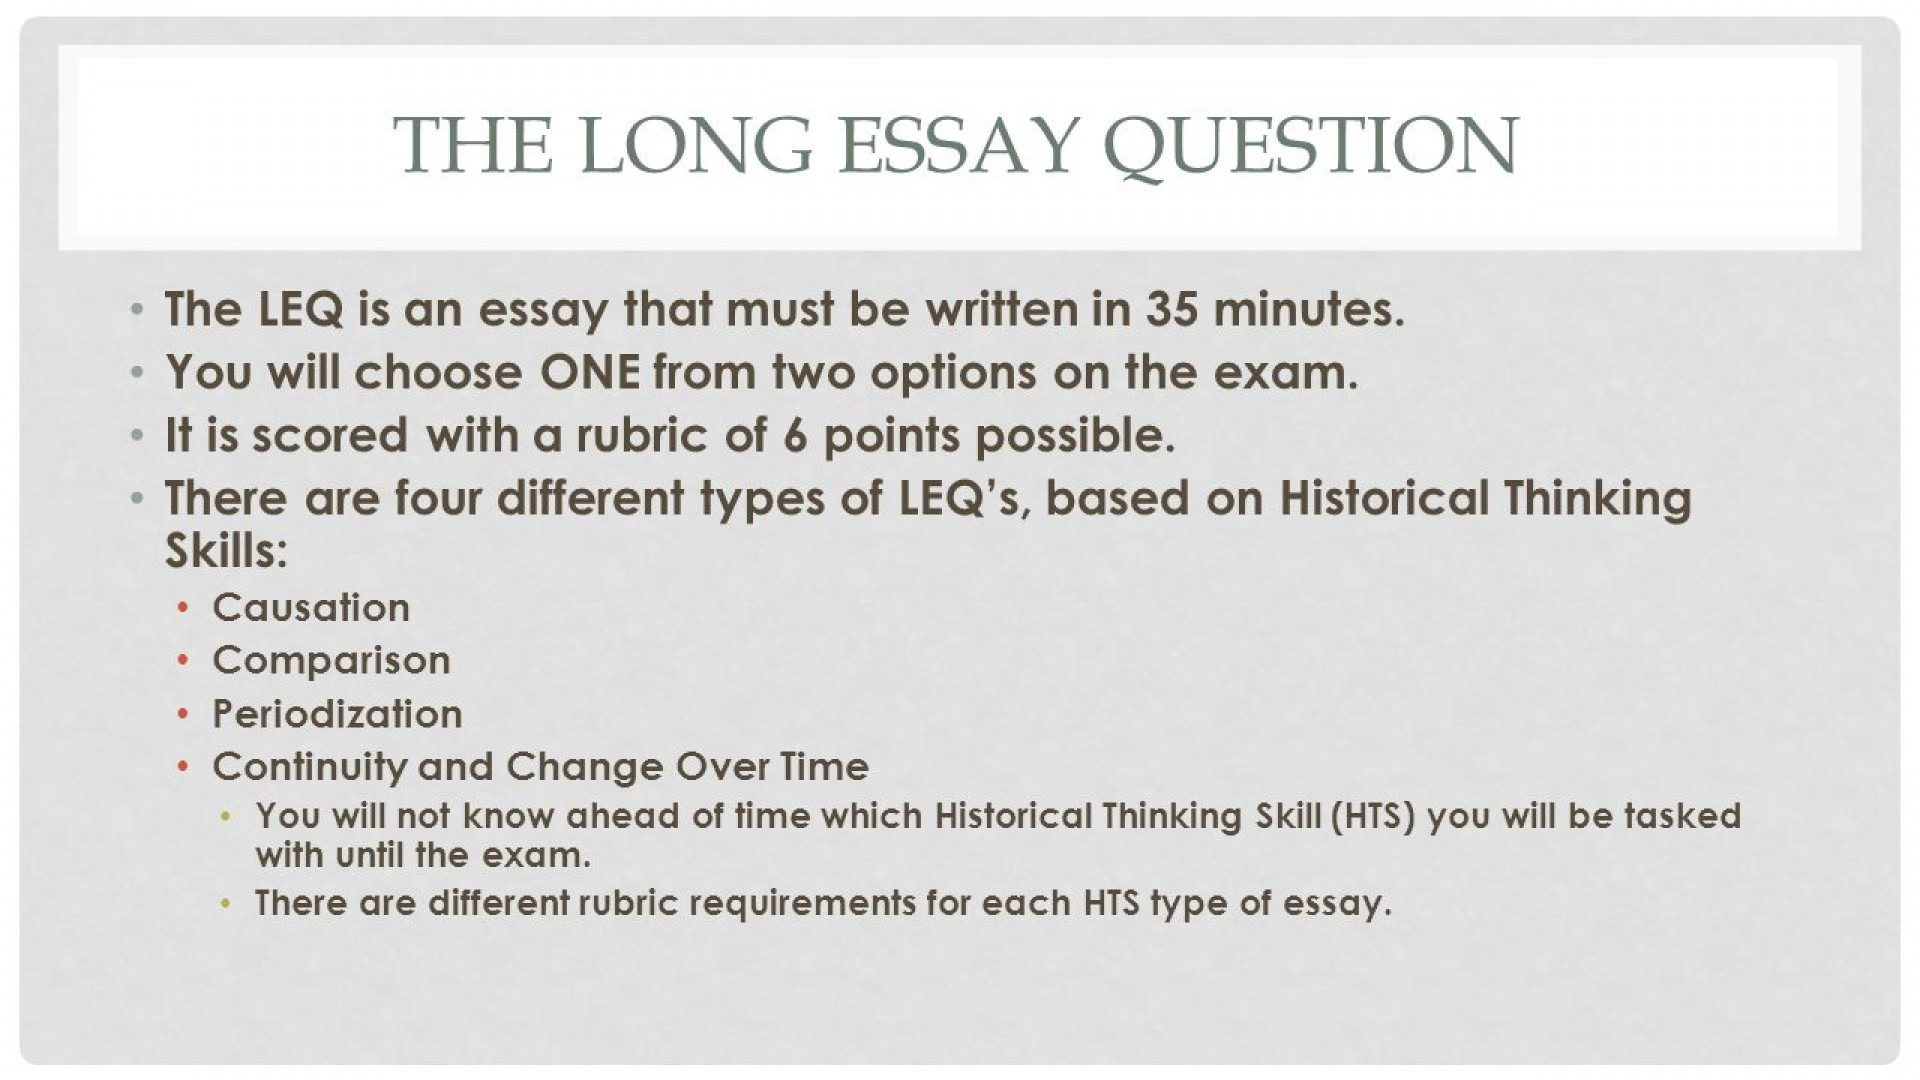 013 How Long Is An Essay Thelongessayquestion Staggering Typically Usually Should Question Response Be 1920